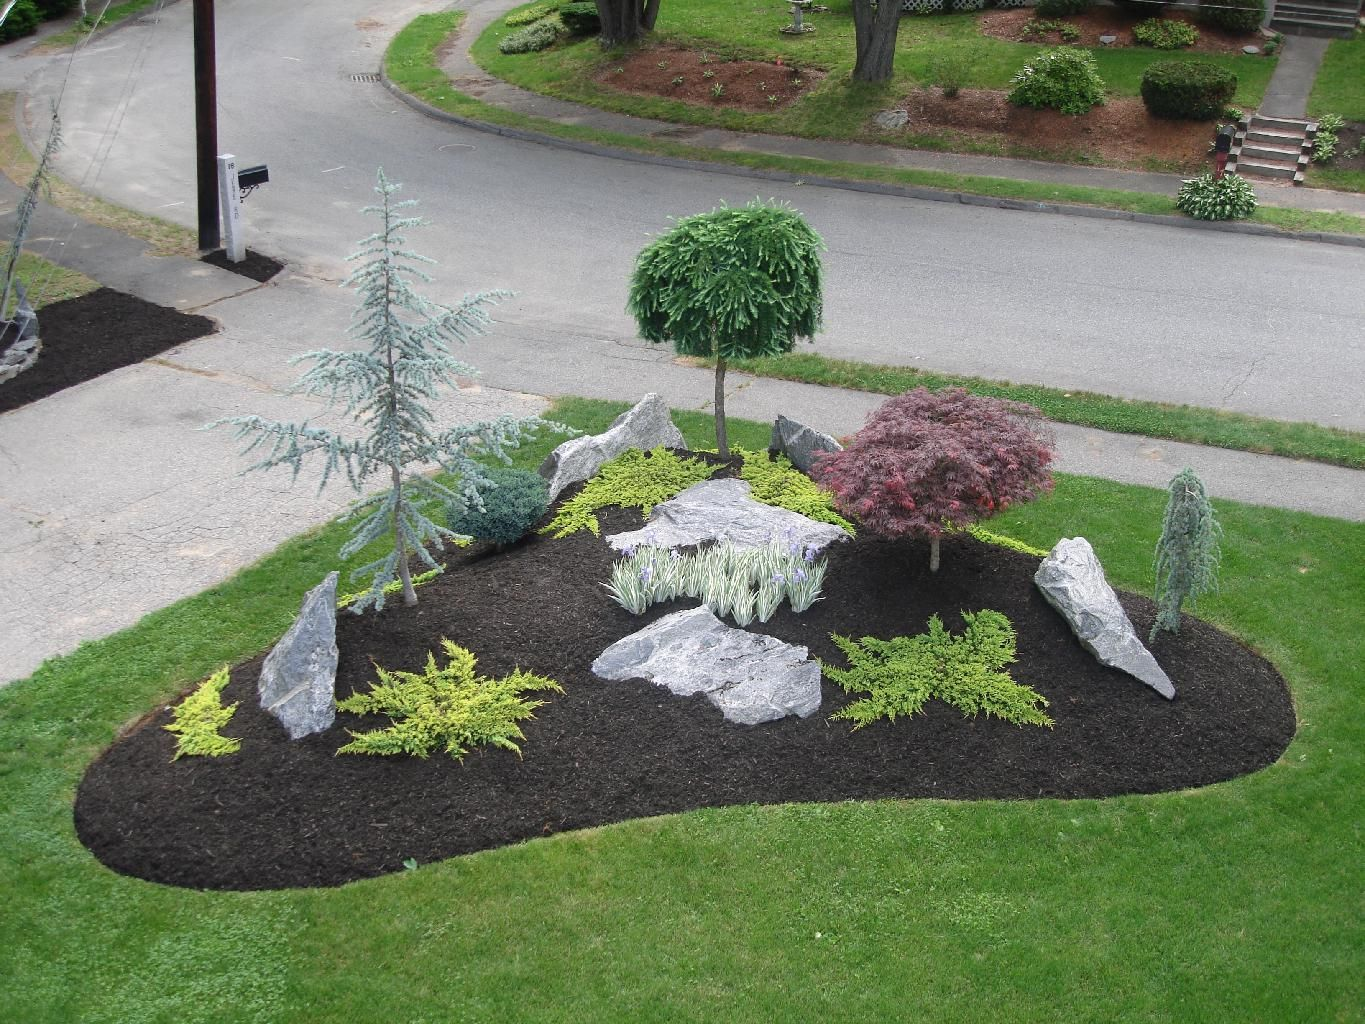 landscaping designs simple landscape designs with rock beds - this is similar to what KUCYVUX